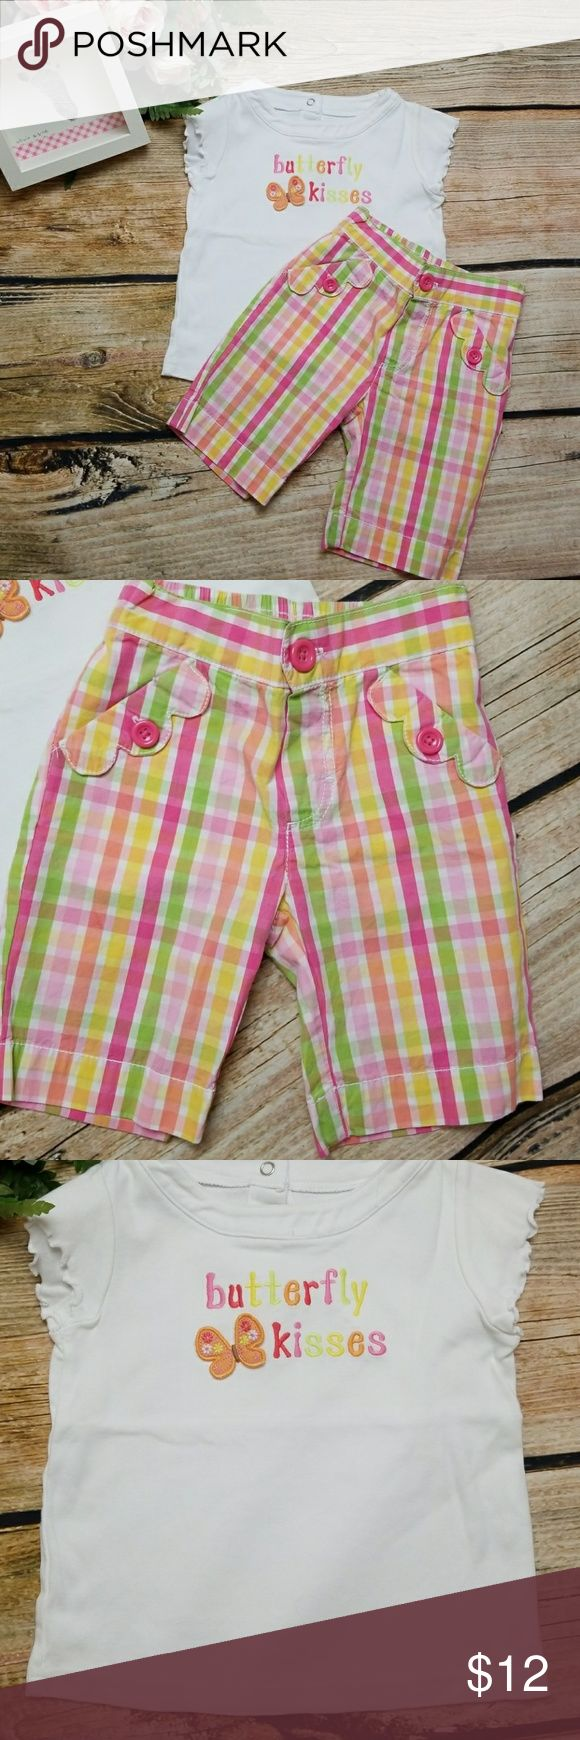 "Gymboree Butterfly Top Circo Plaid Shorts Gymboree / Circo   1.Gymboree Butterfly top with "" butterfly kisses"".  3 snap back . Ruffle short sleeves. 100% cotton. Sz 4 2. Pink, yelliw green orange coordinating Circo Shorts. Button front. 2 pockets. 100% cotton. Elastic waist back. Sz 4T  SMOKE FREE HOME Gymboree Circo Matching Sets"